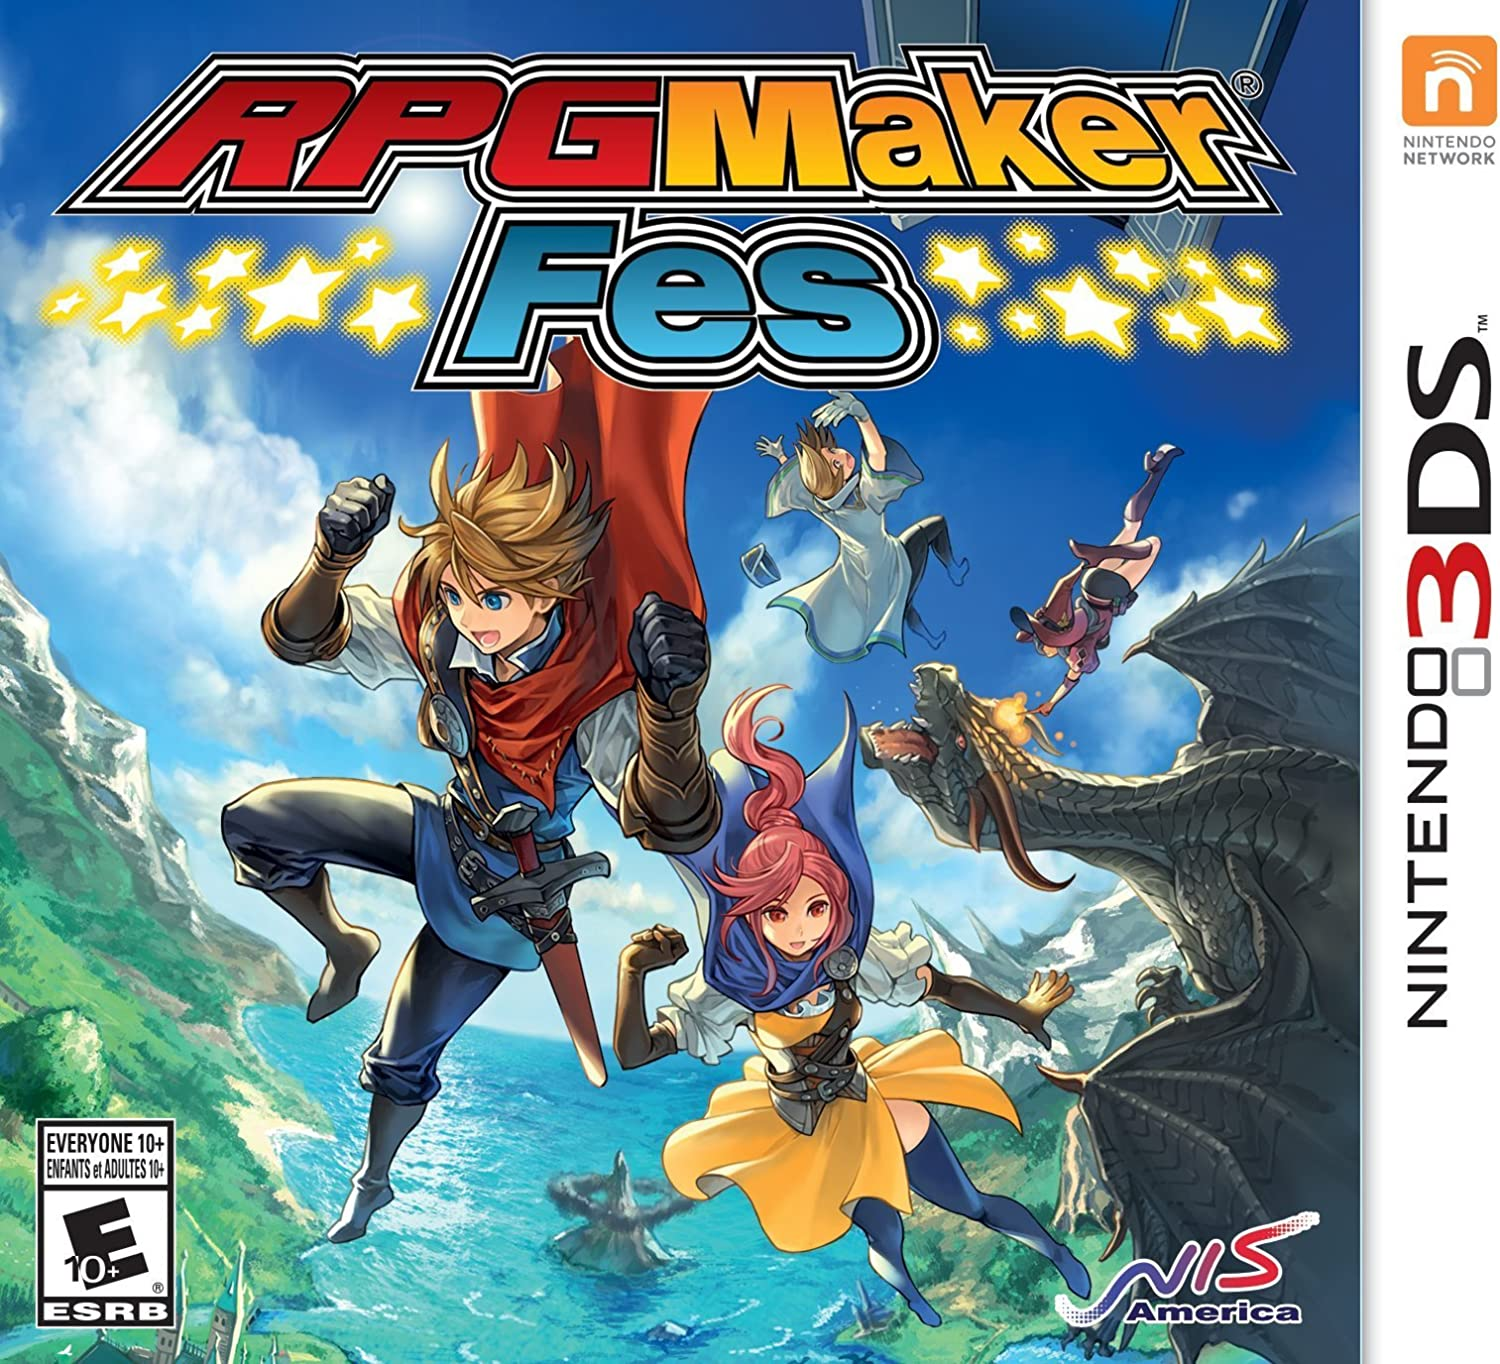 Amazon com: RPG Maker Fes - Nintendo 3DS: Video Games